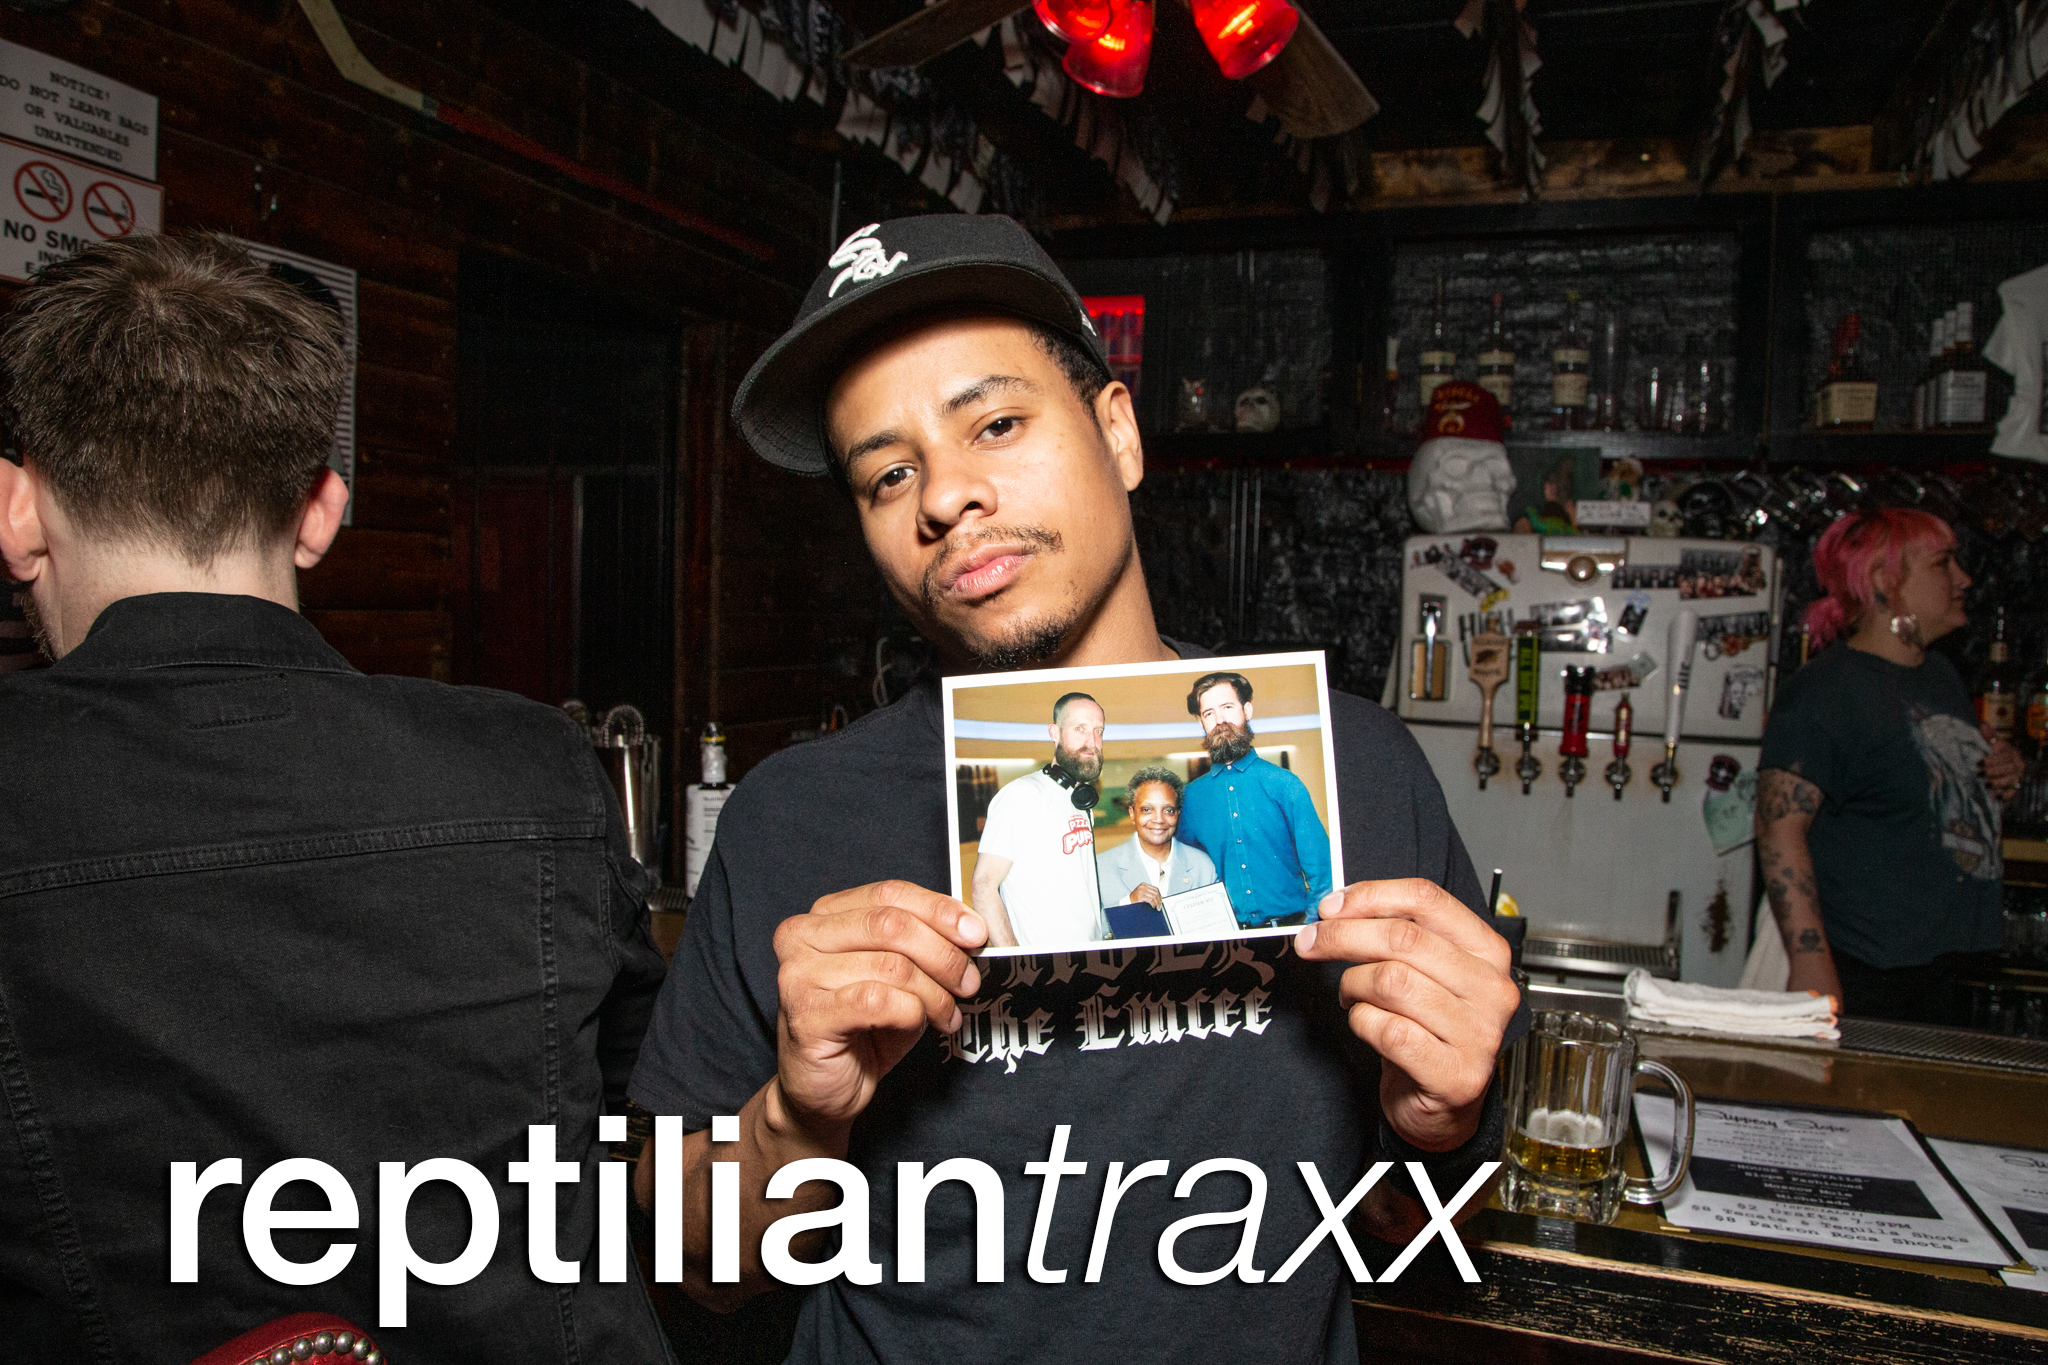 glitterguts event photos from reptilian traxx at slippery slope, chicago 2019